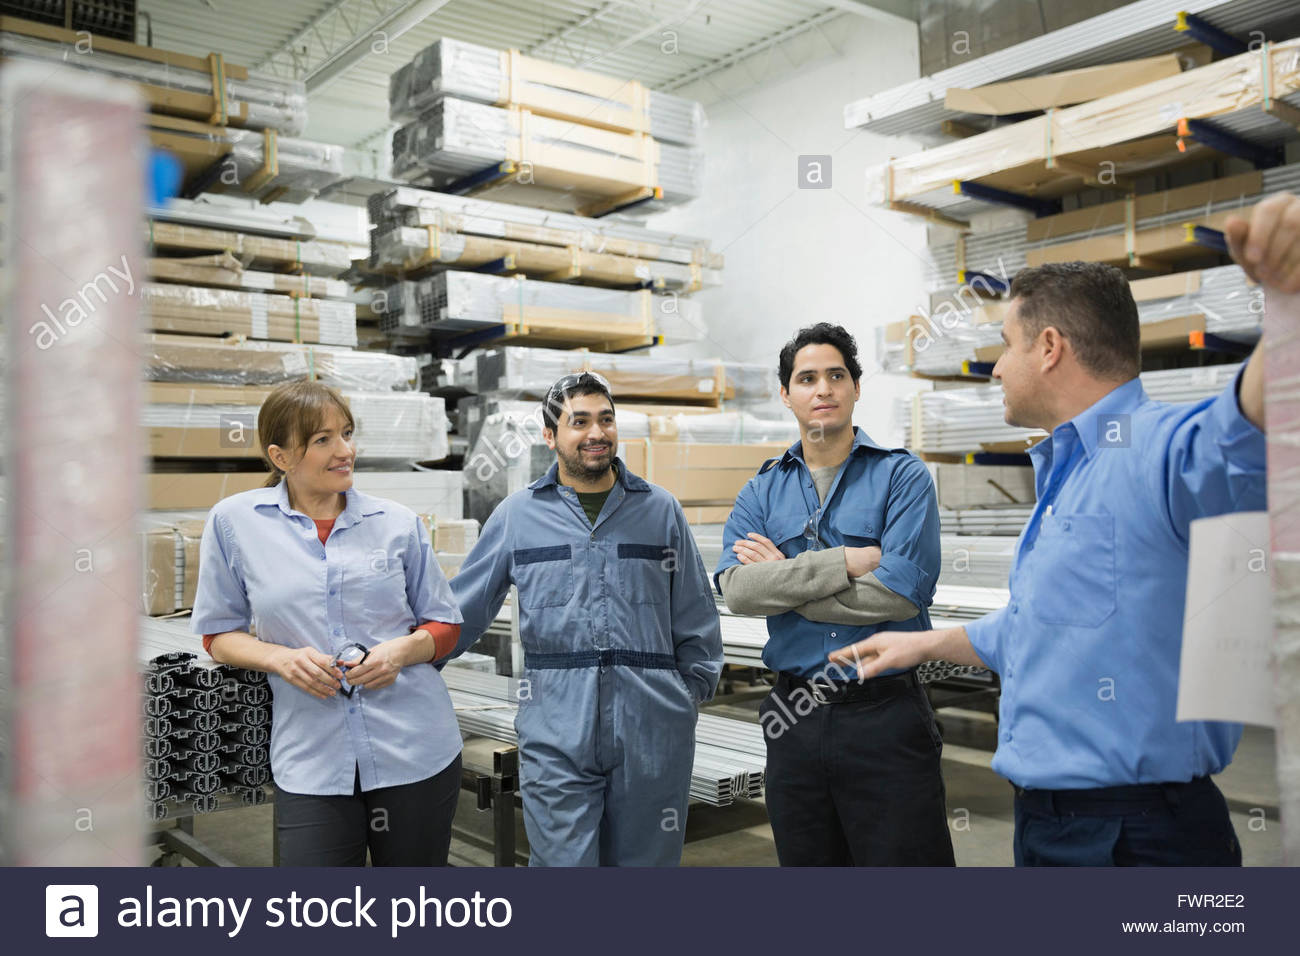 Manual workers meeting in warehouse - Stock Image